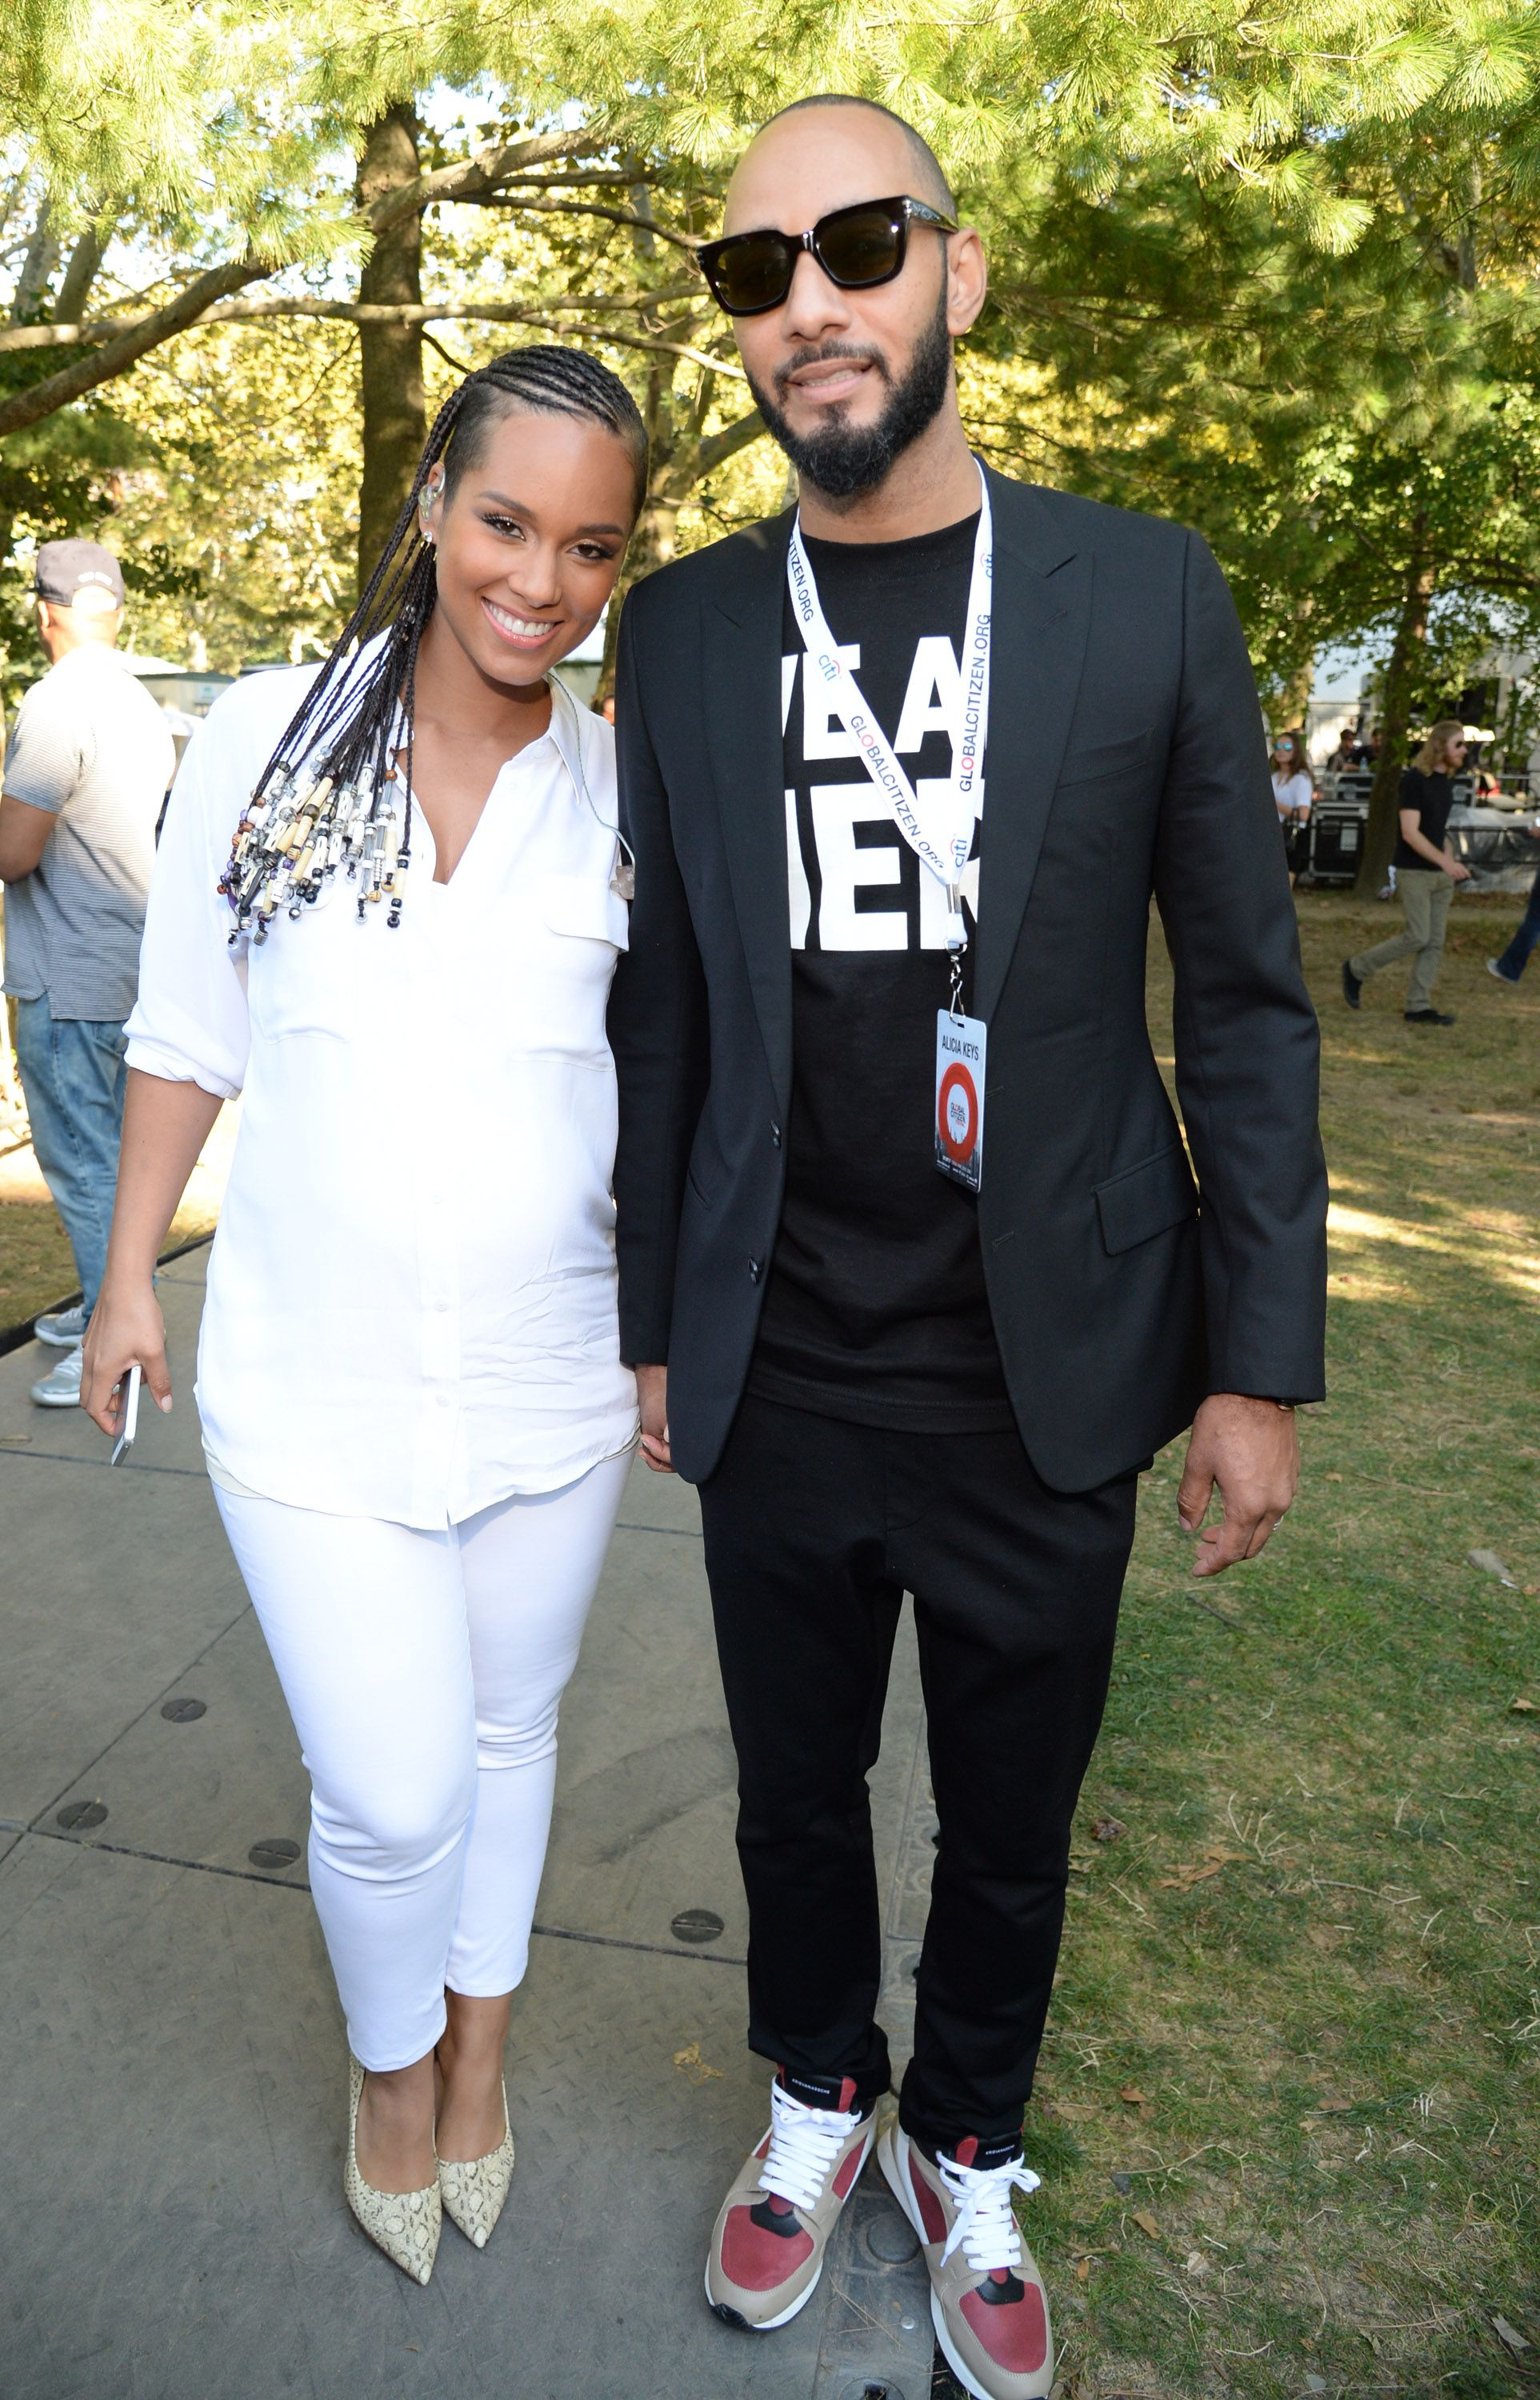 Alicia Keys and Swizz Beatz during the 2014 Global Citizen Festival at Central Park on September 27, 2014 in New York City. | Source: Getty Images